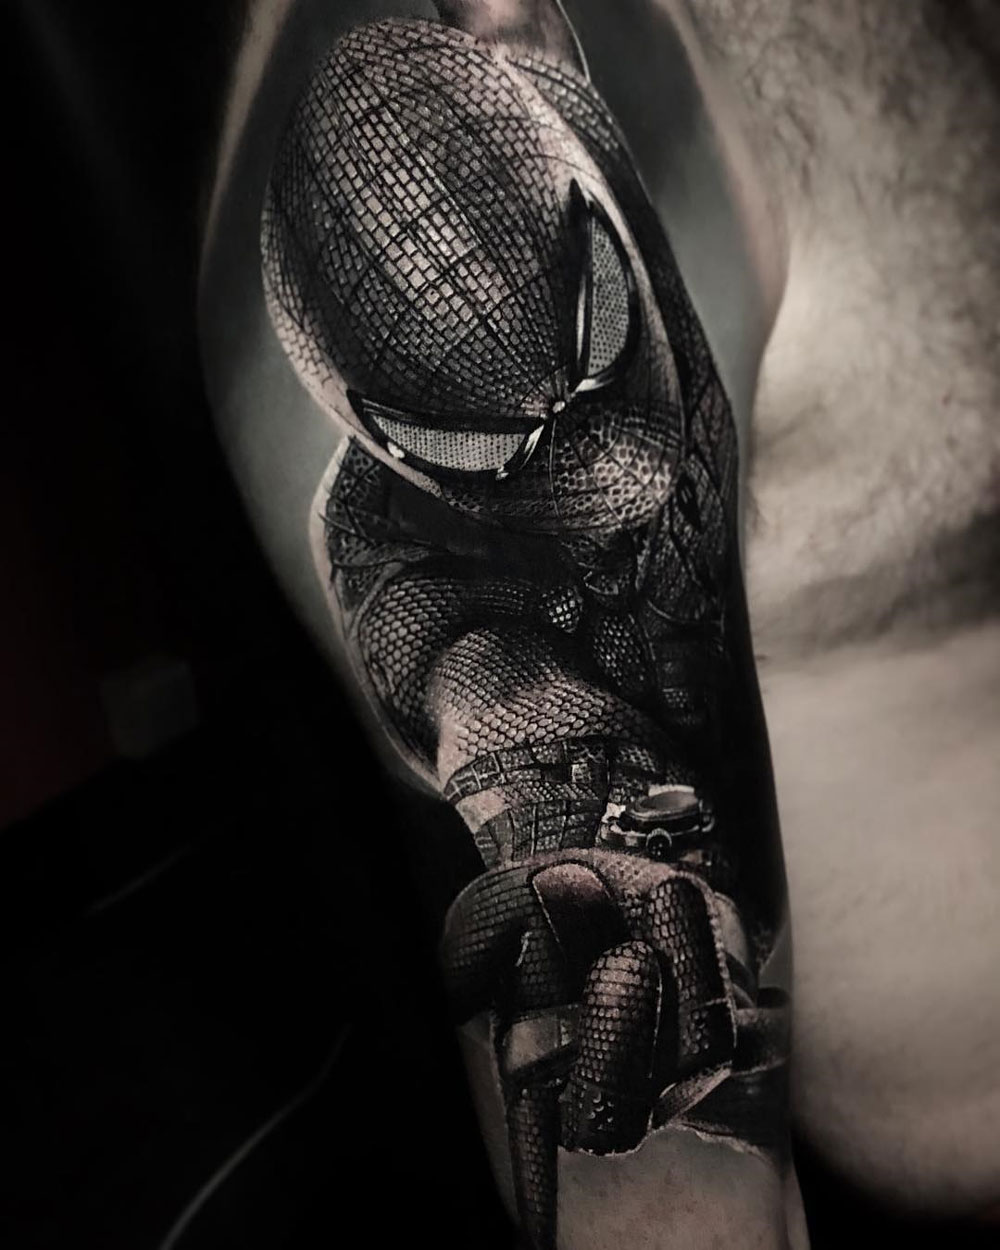 Spider-Man sleeve